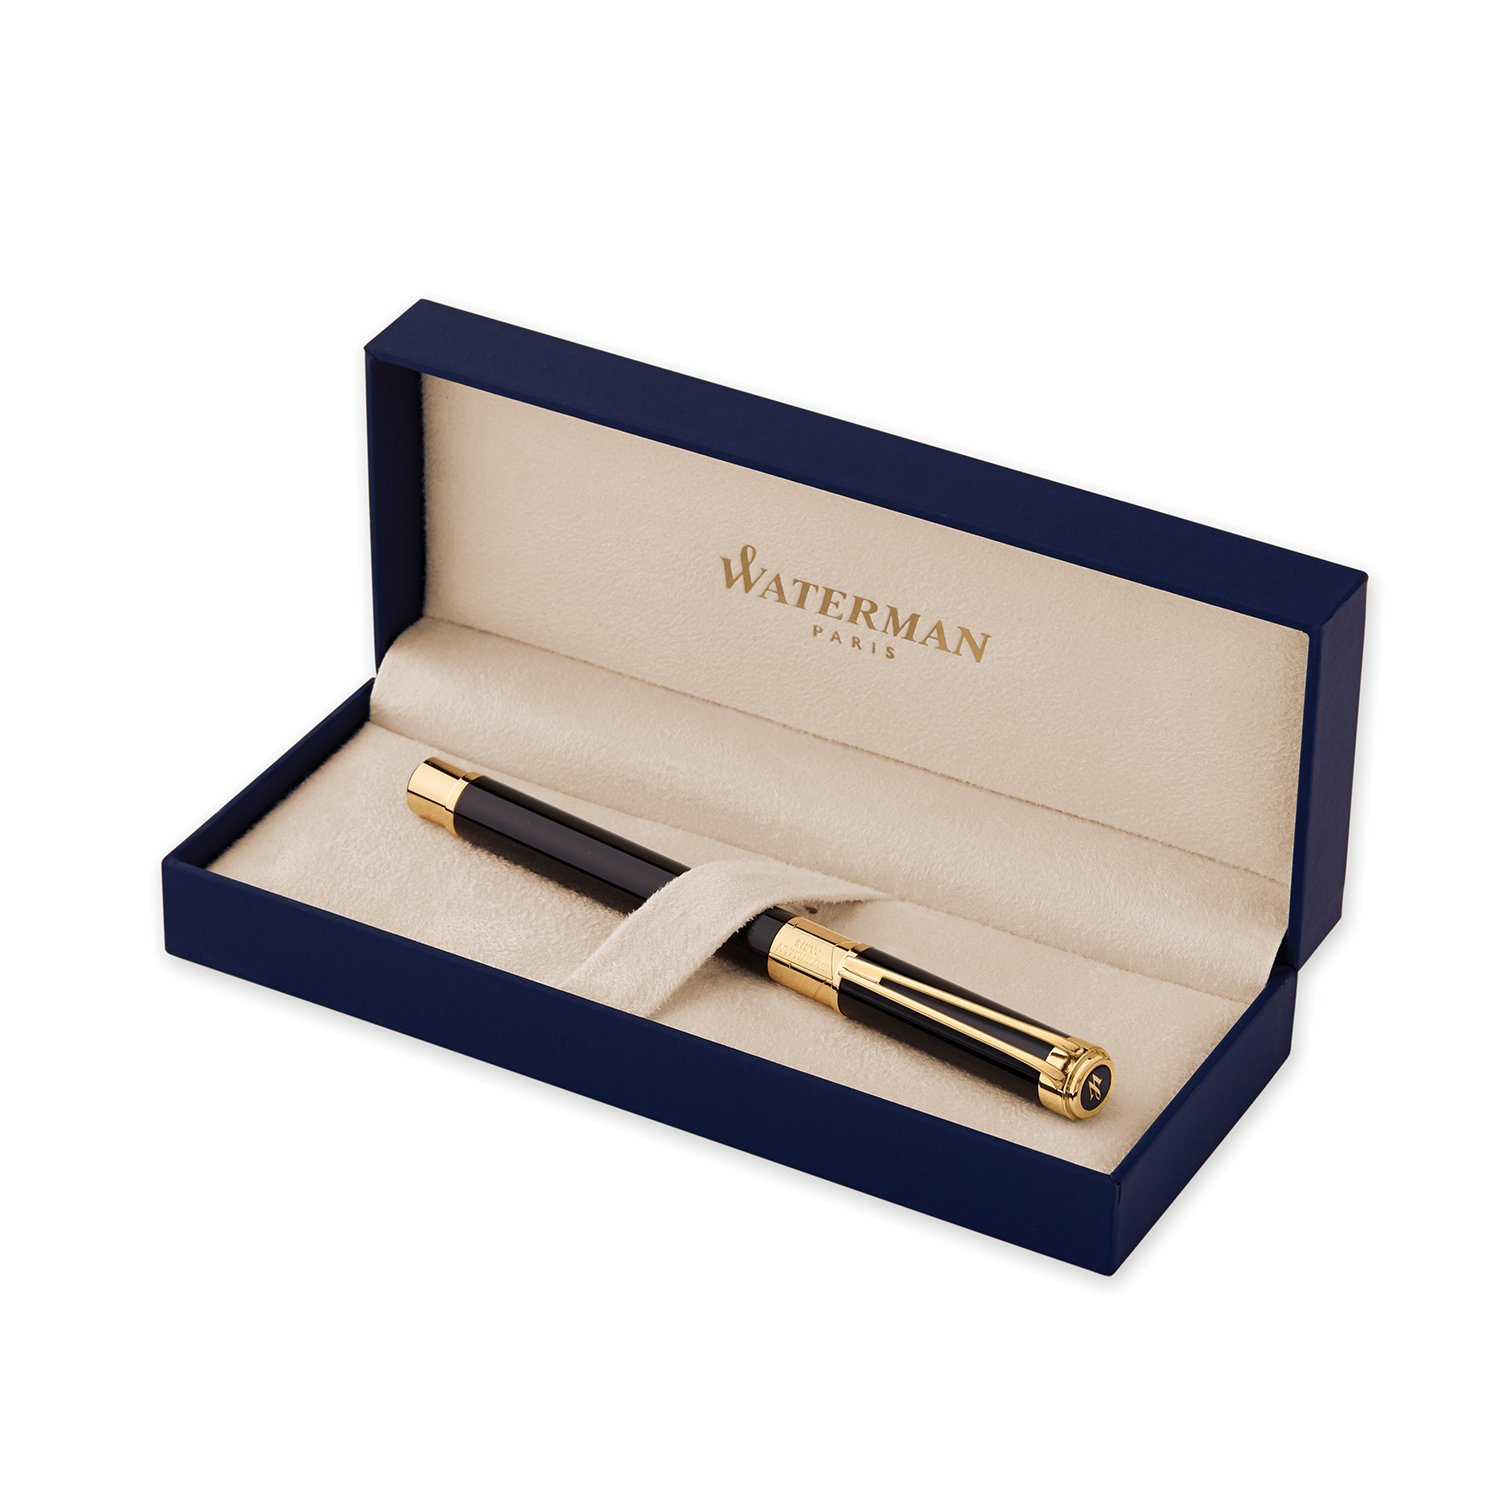 Waterman Perspective Fountain Pen, Gloss Black with 23k Gold Clip, Medium Nib with Blue Ink Cartridge, Gift Box